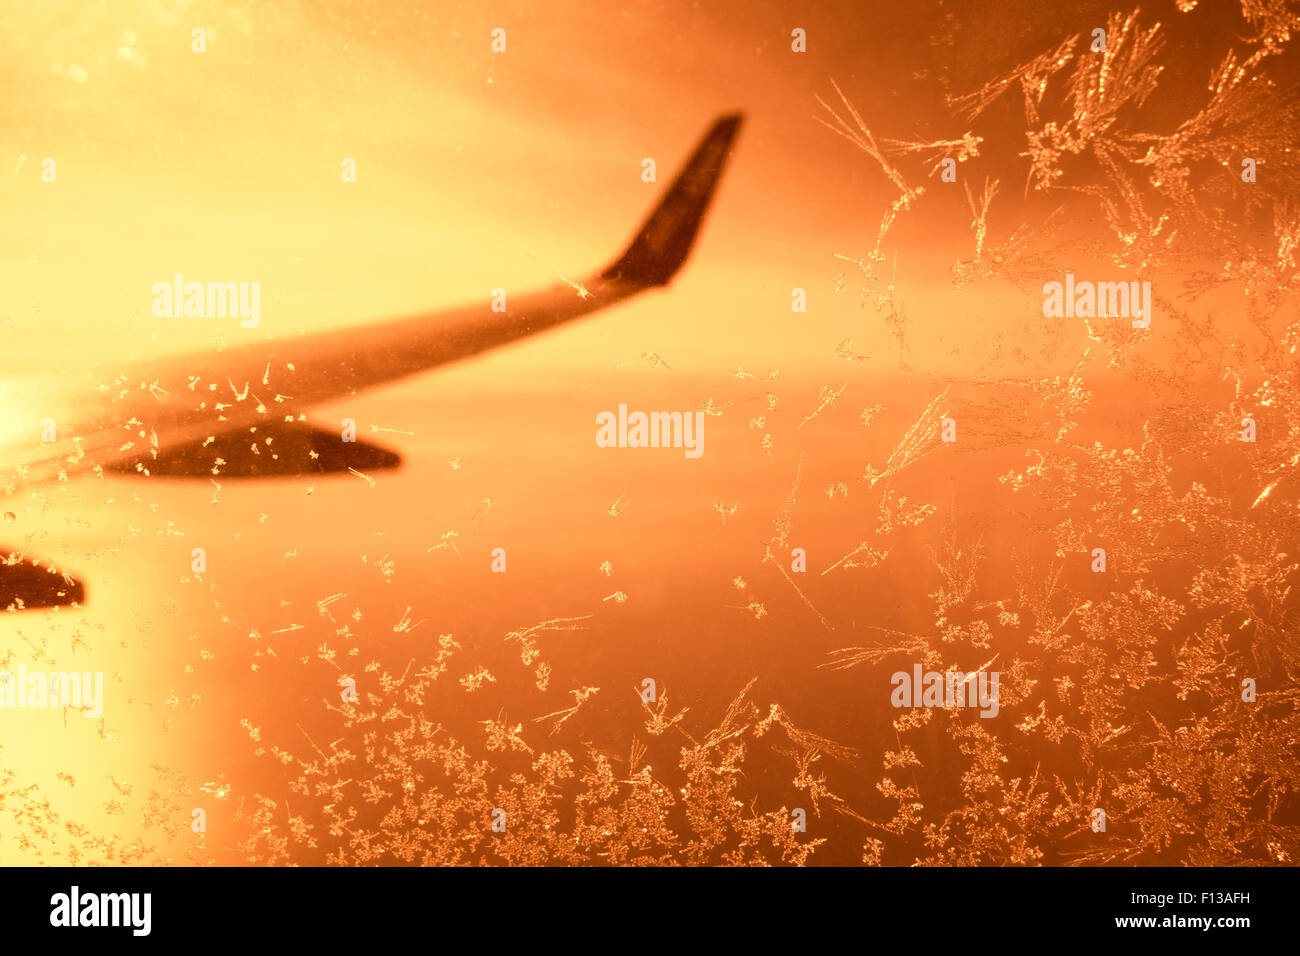 View out of frosted airplane window at sunset Stock Photo